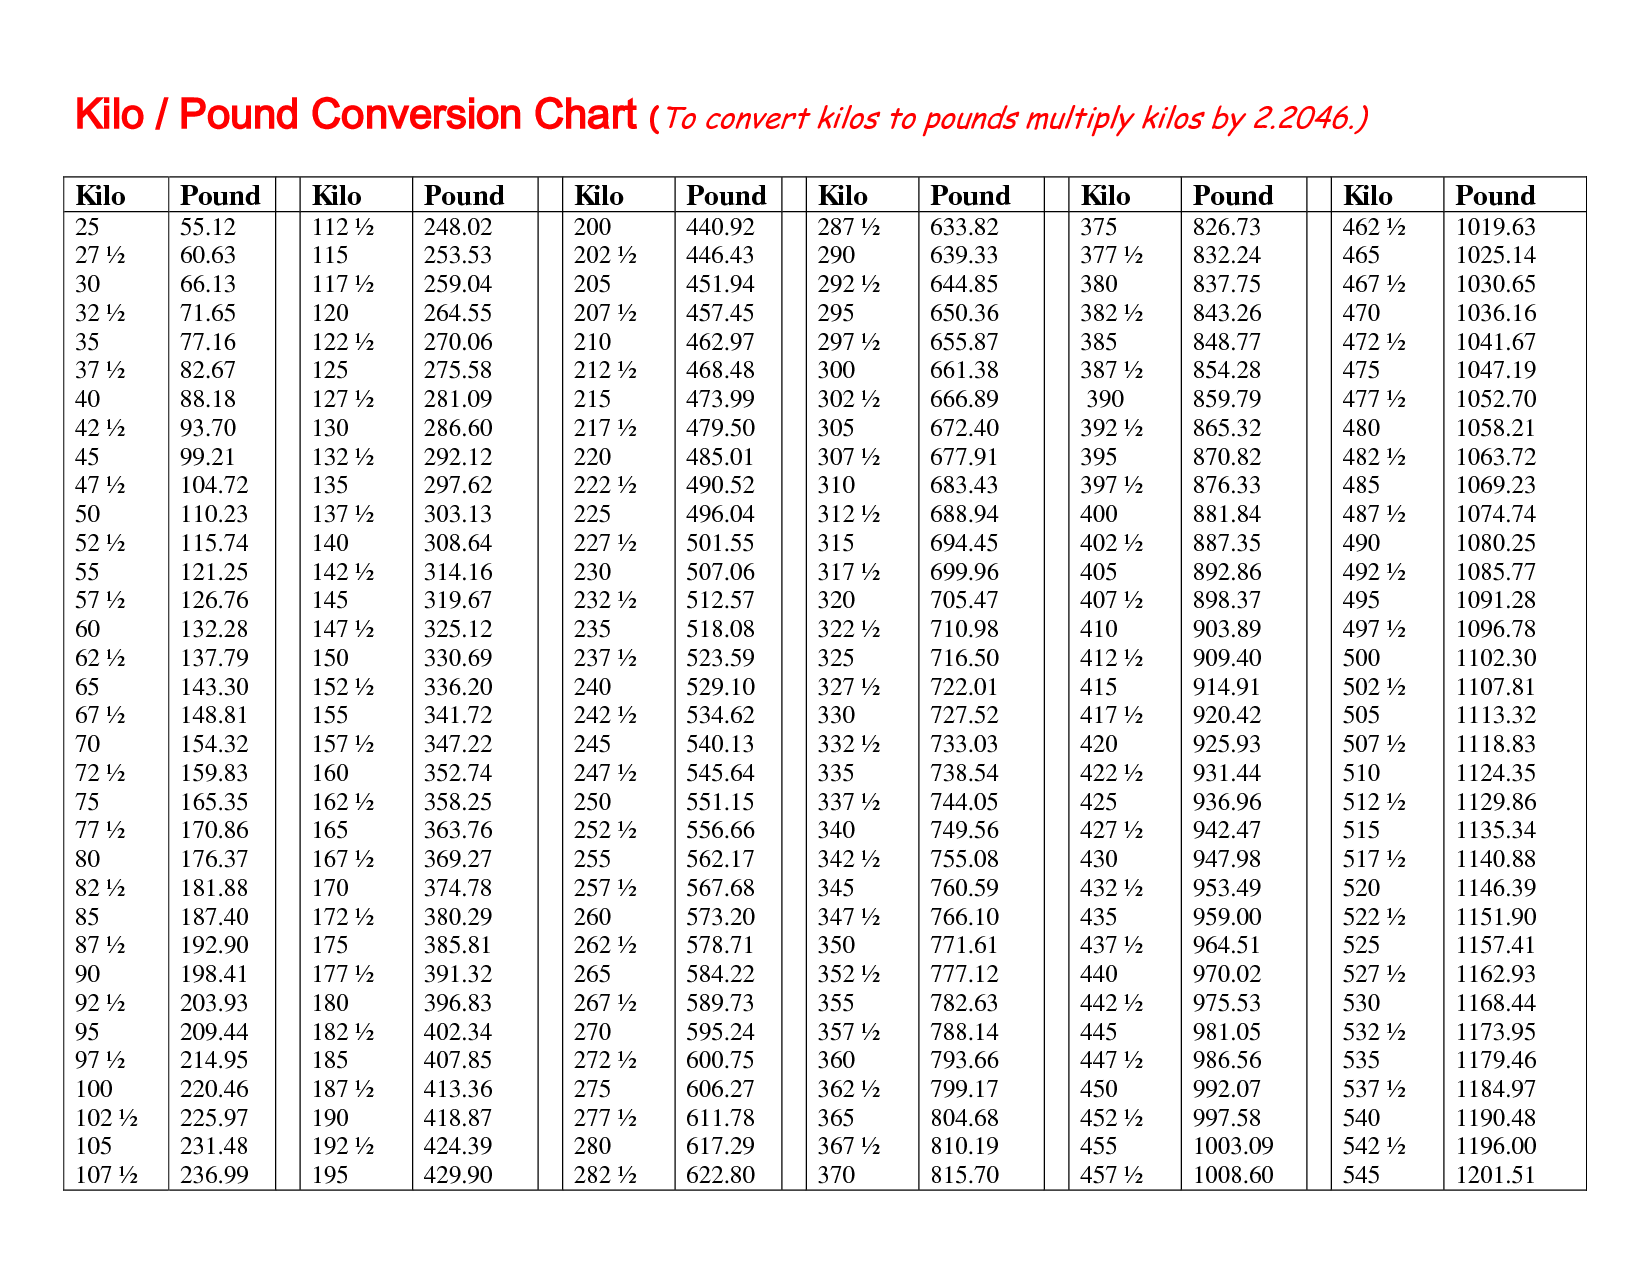 Pounds In Kg Results For Metric Conversion Chart Lbs To Kg